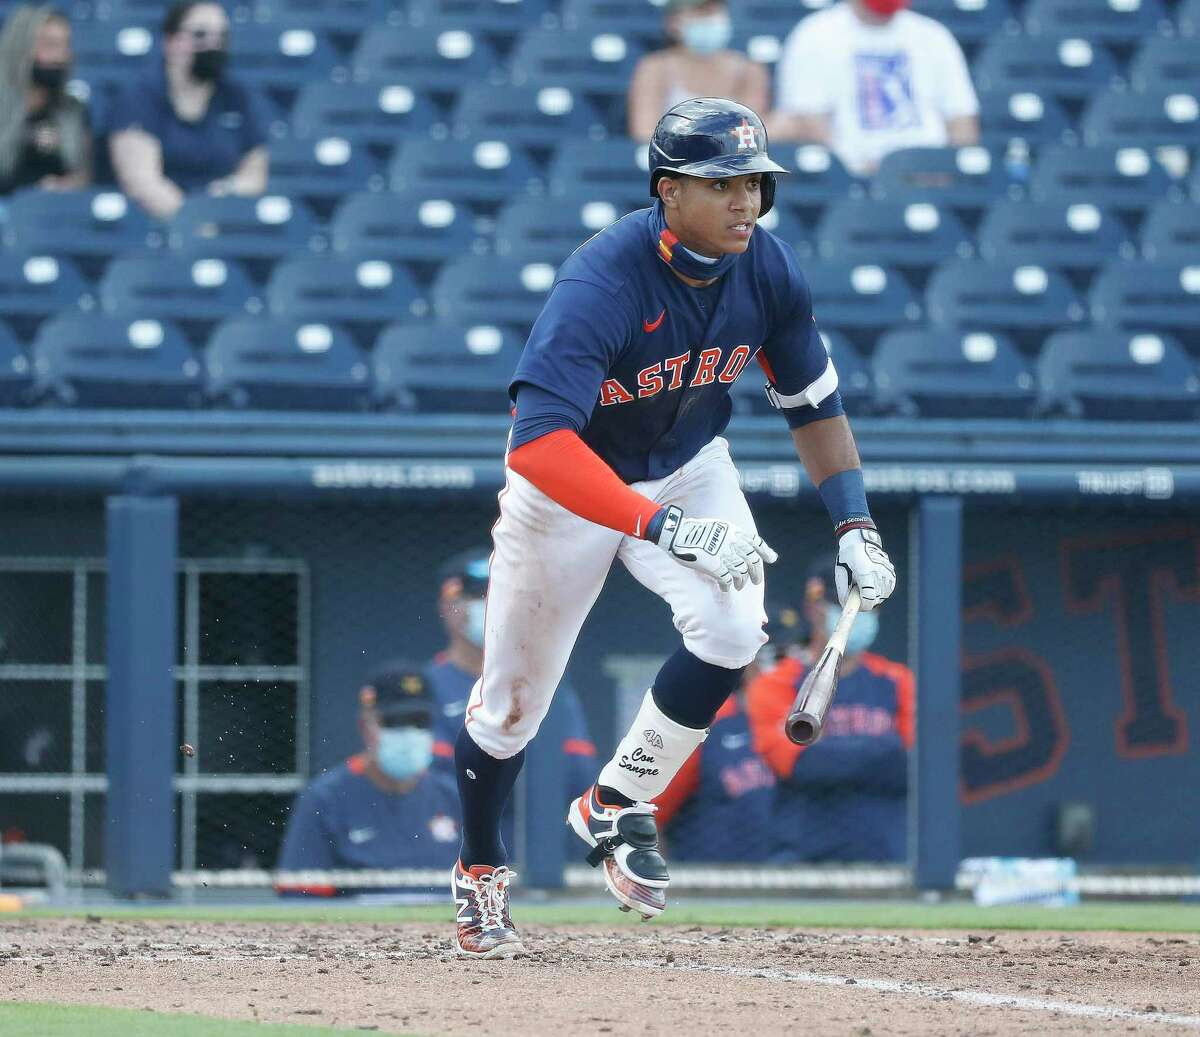 Astros infielder Jeremy Peña has yet to play above Advanced Class A, but that figures to change in 2021.